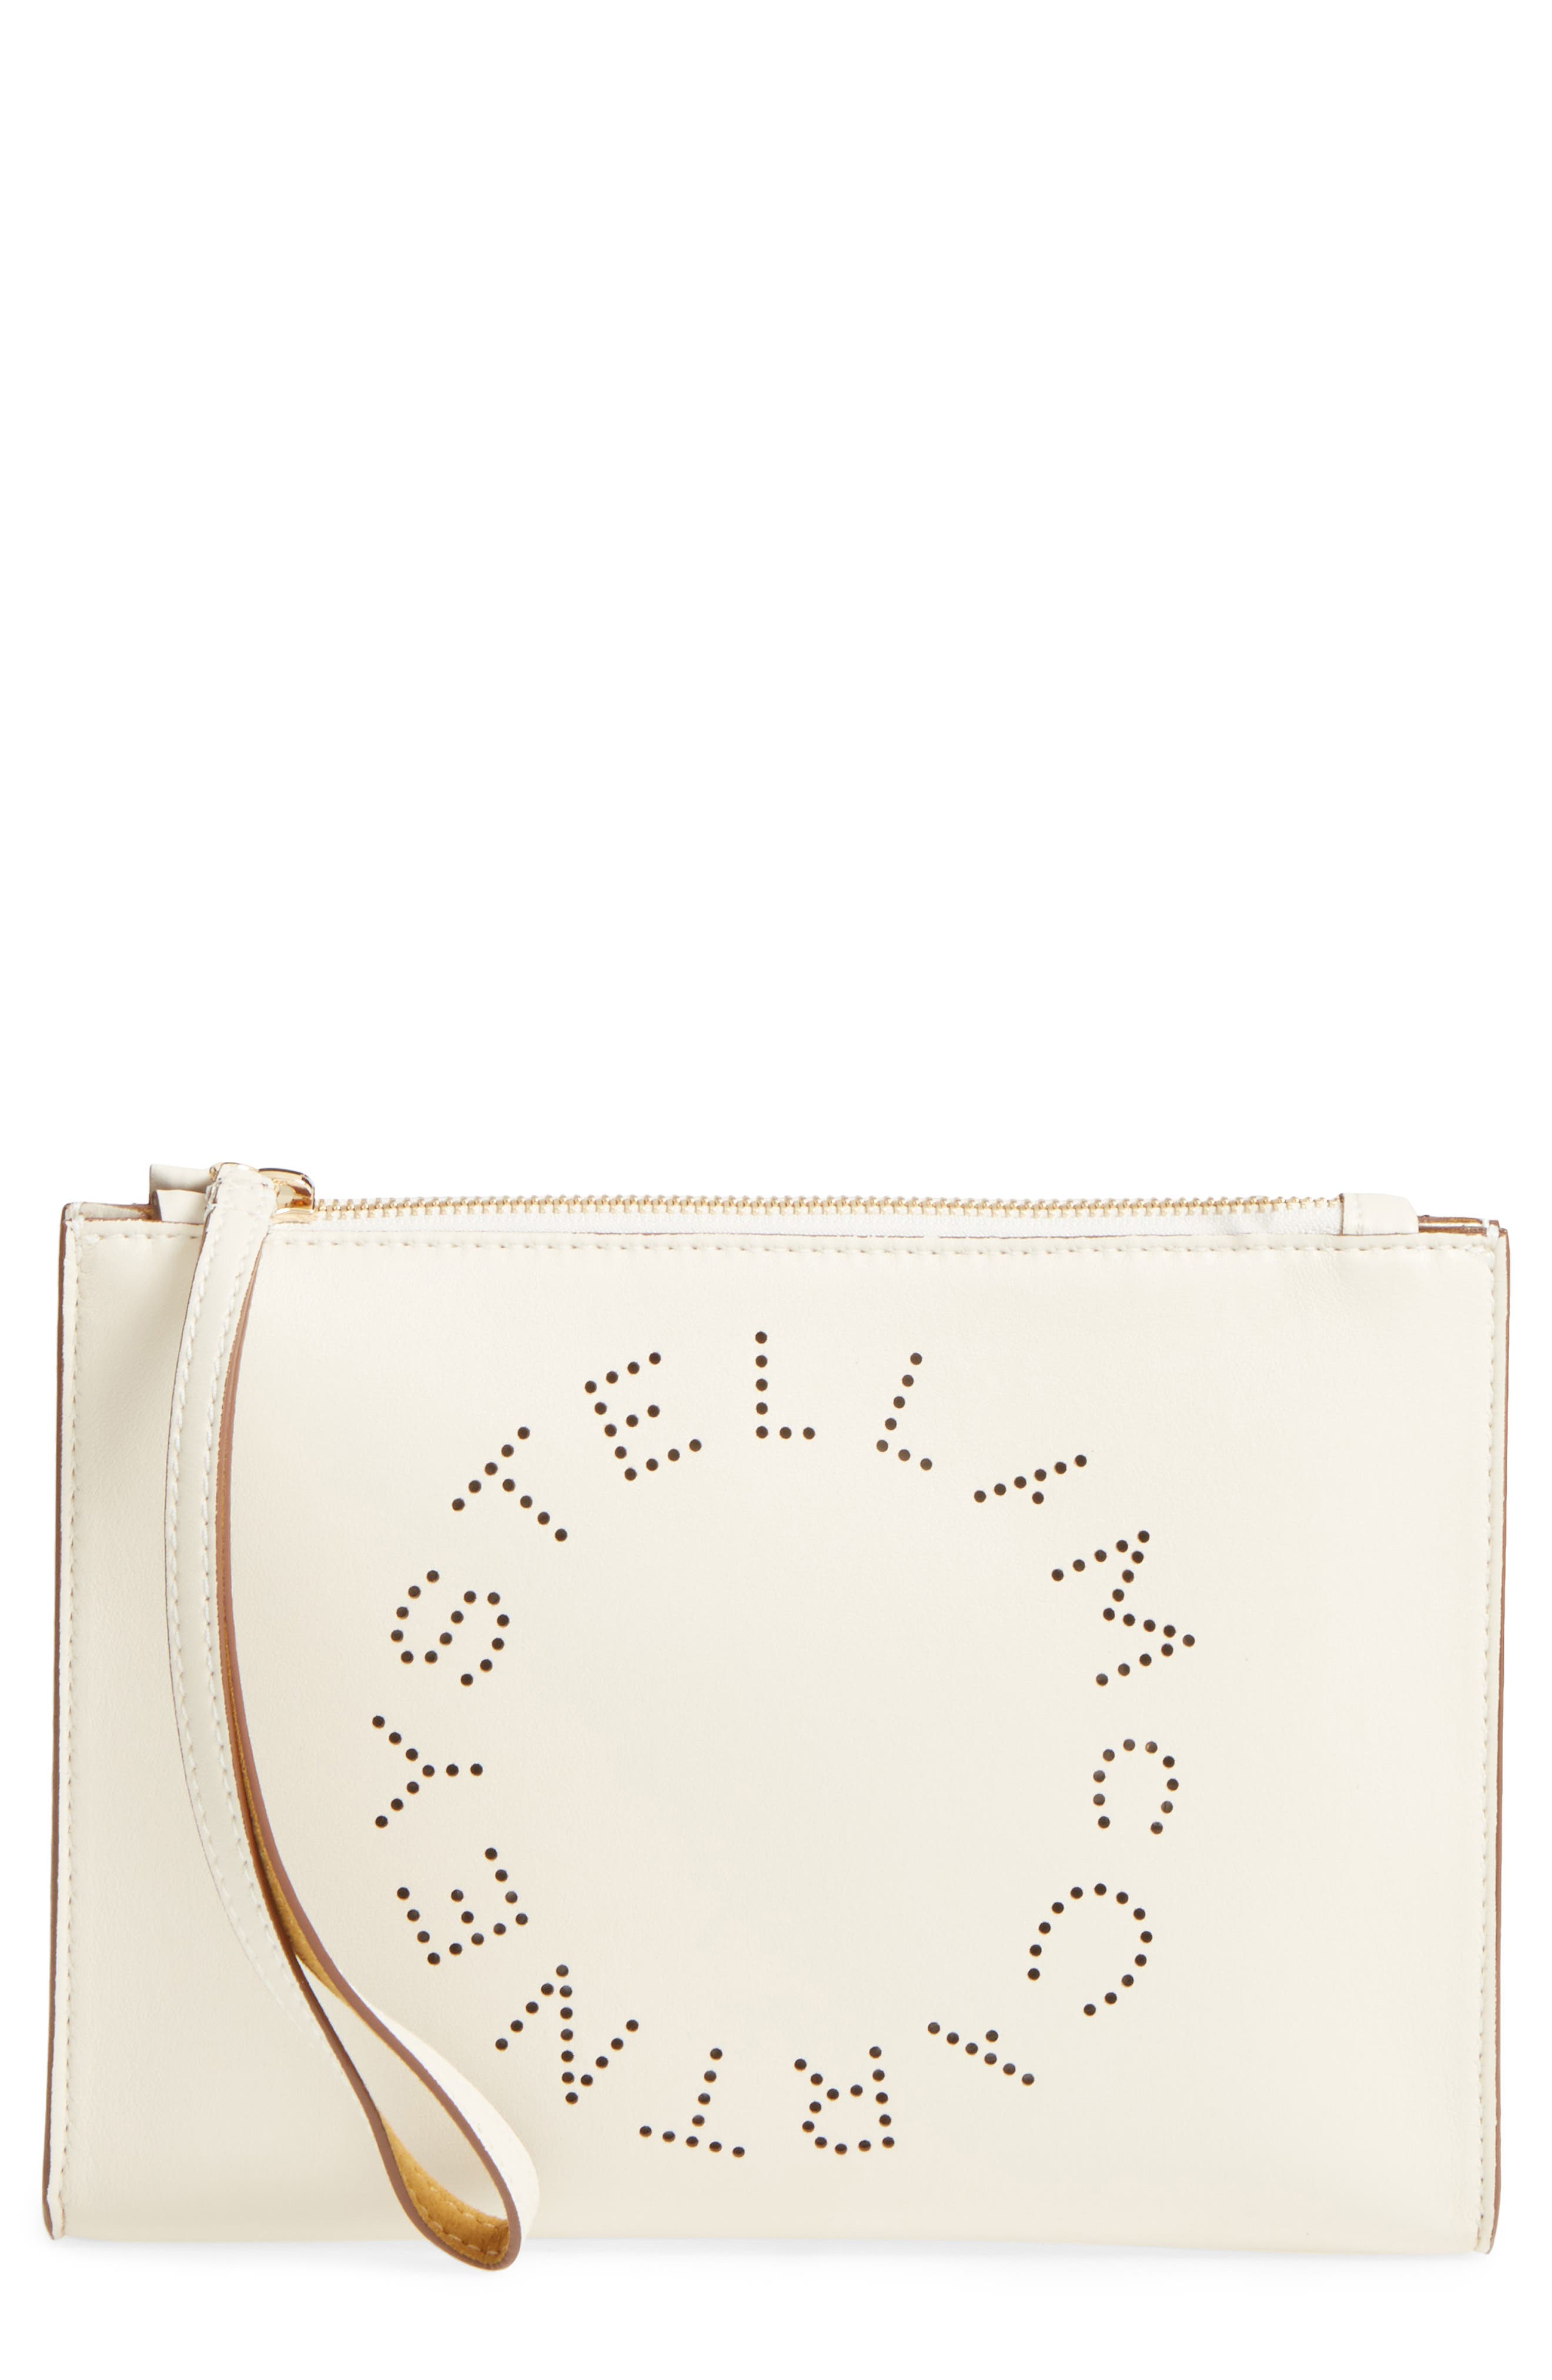 Alternate Image 1 Selected - Stella McCartney Alter Faux Nappa Leather Wristlet Clutch